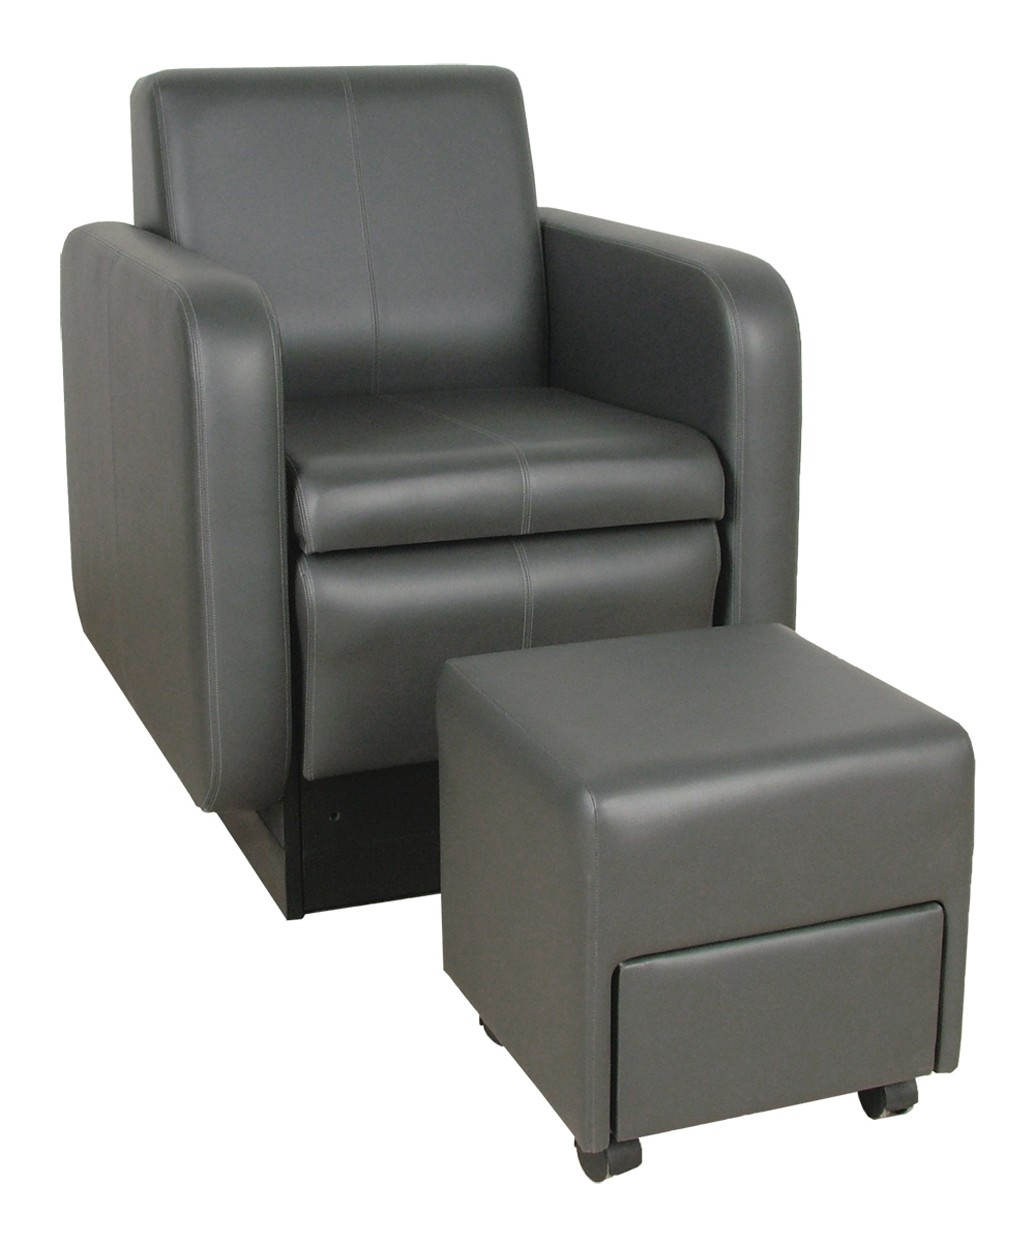 Pedicure Chair Collins 2555 Blush Club Pedicure Chair W Footsie Bath